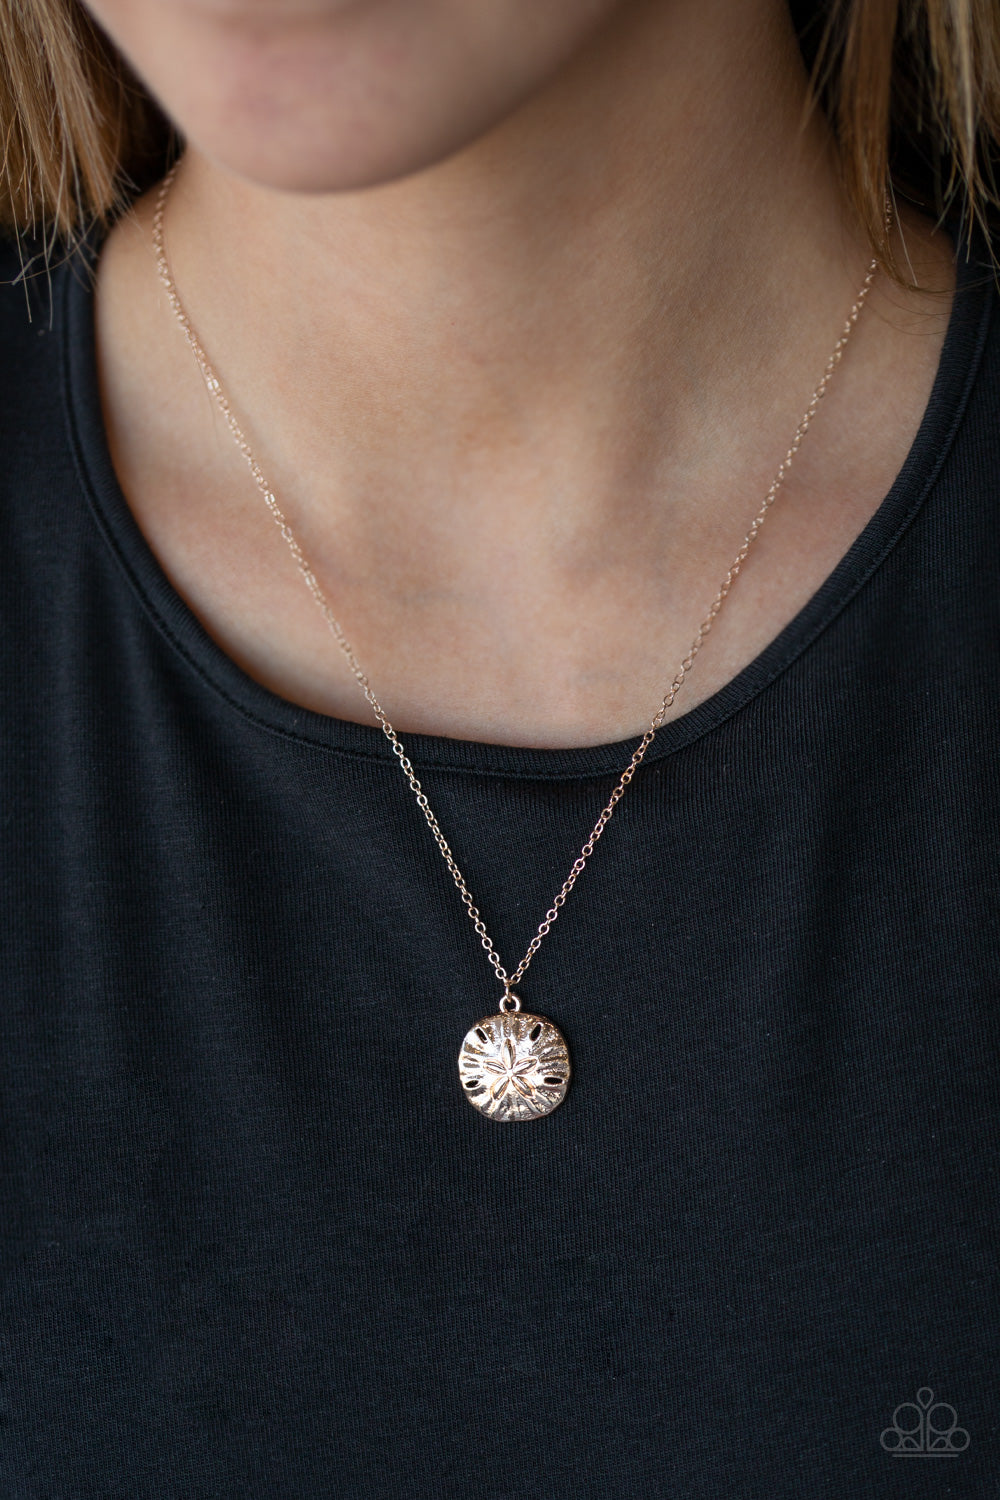 Sand Dollar Shores - Rose Gold Necklace - SavvyChicksJewelry